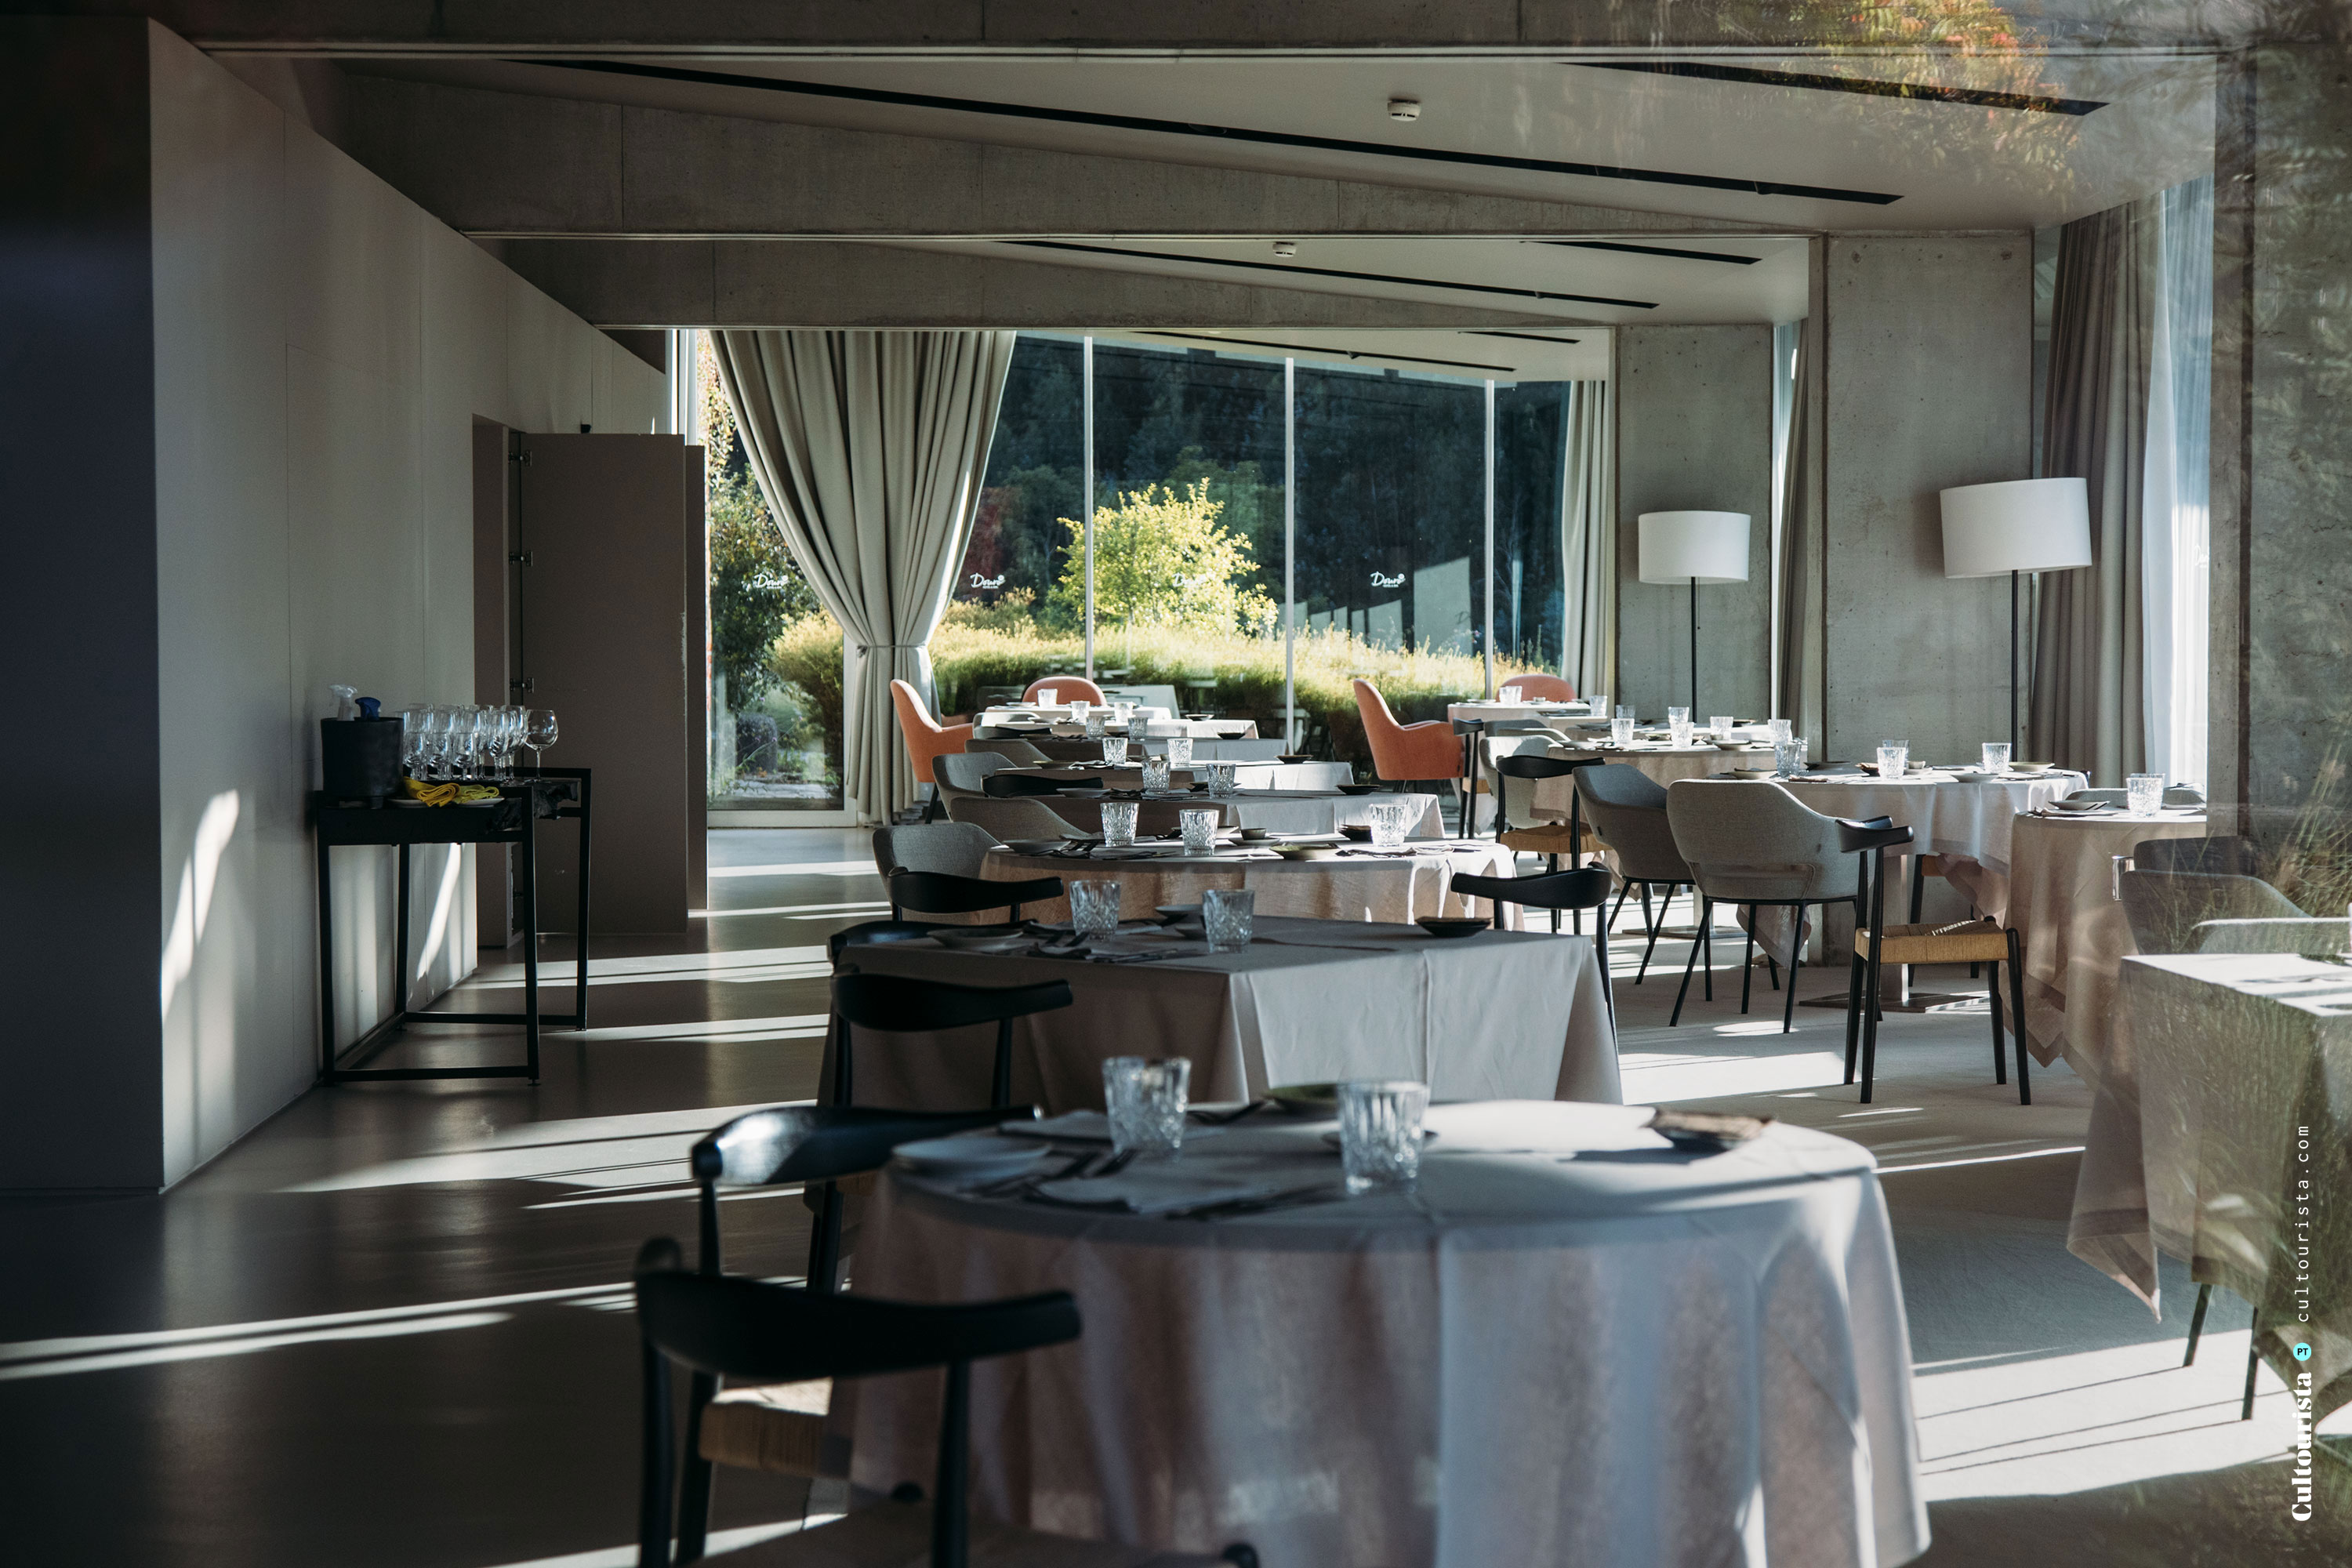 Restaurant at the Hotel Douro41 Portugal